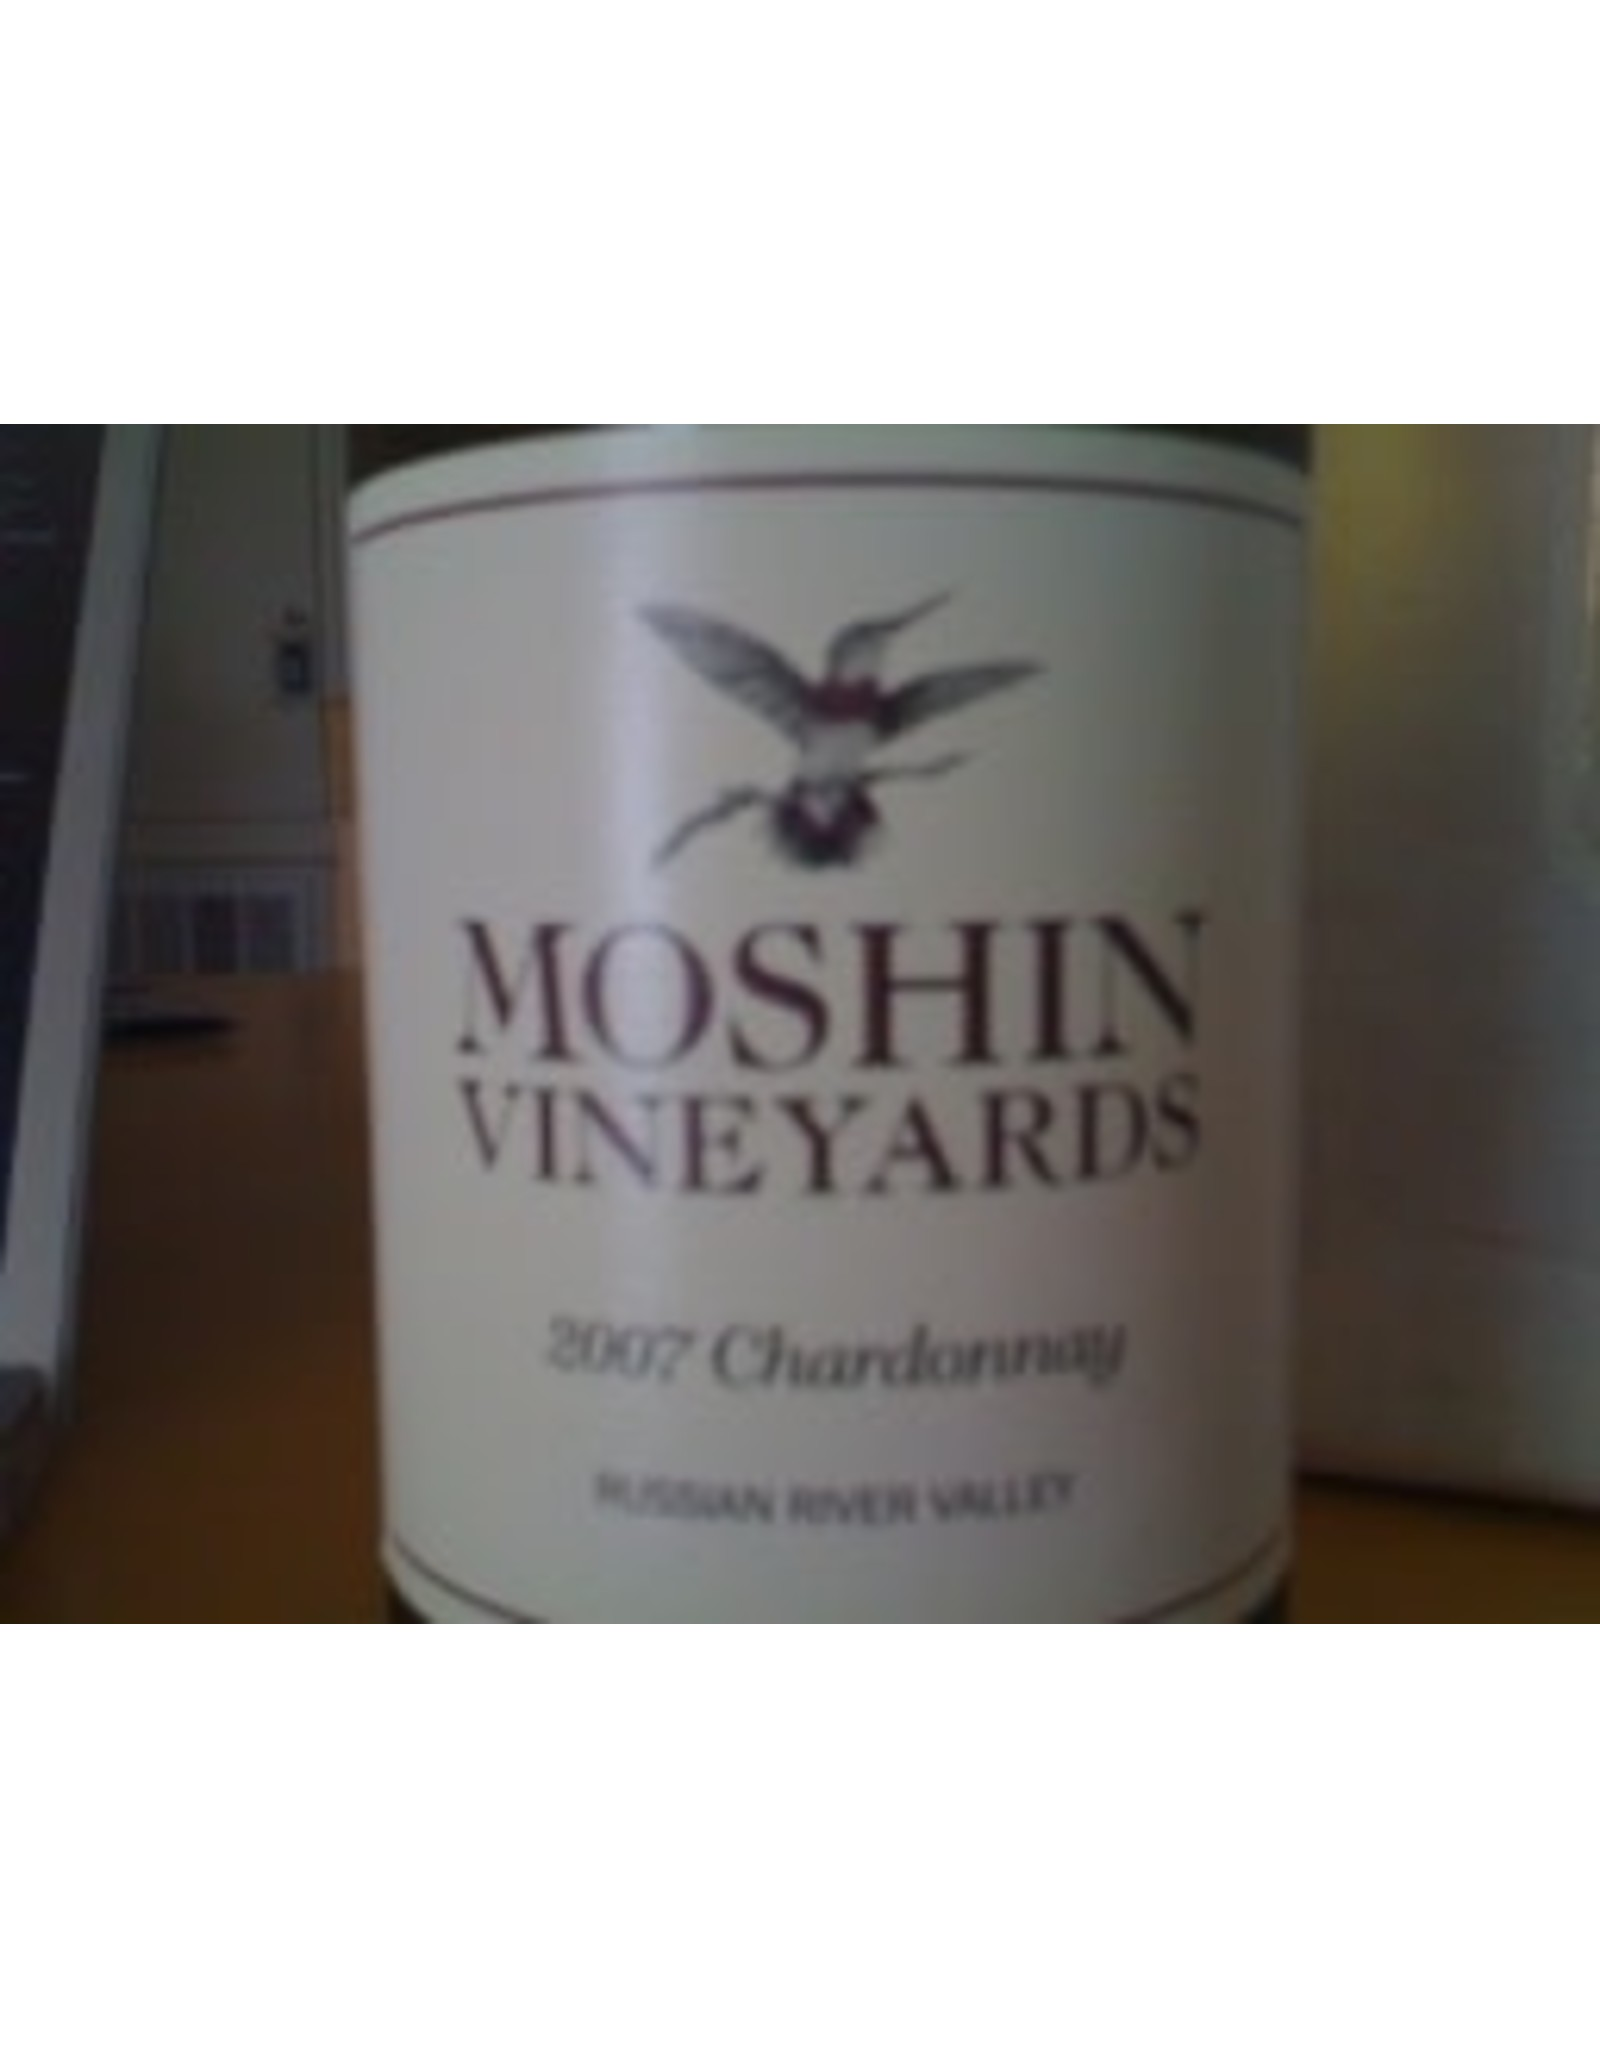 MOSHIN VINEYARDS CHARDONNAY 2012